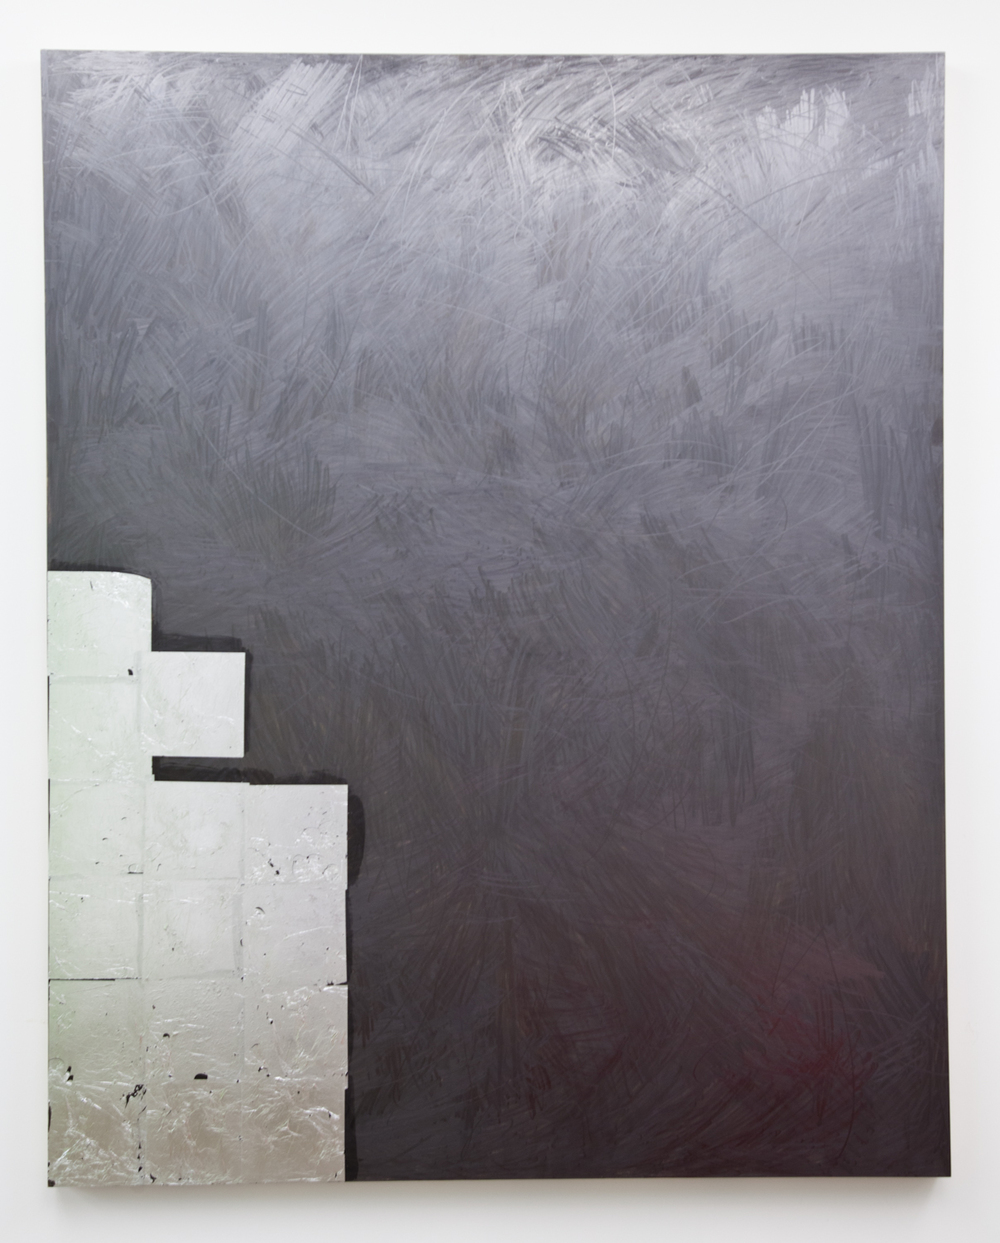 Brendan Lynch  Chill Drink  2012 Graphite and aluminum leaf on wood panel 60 x 48 inches